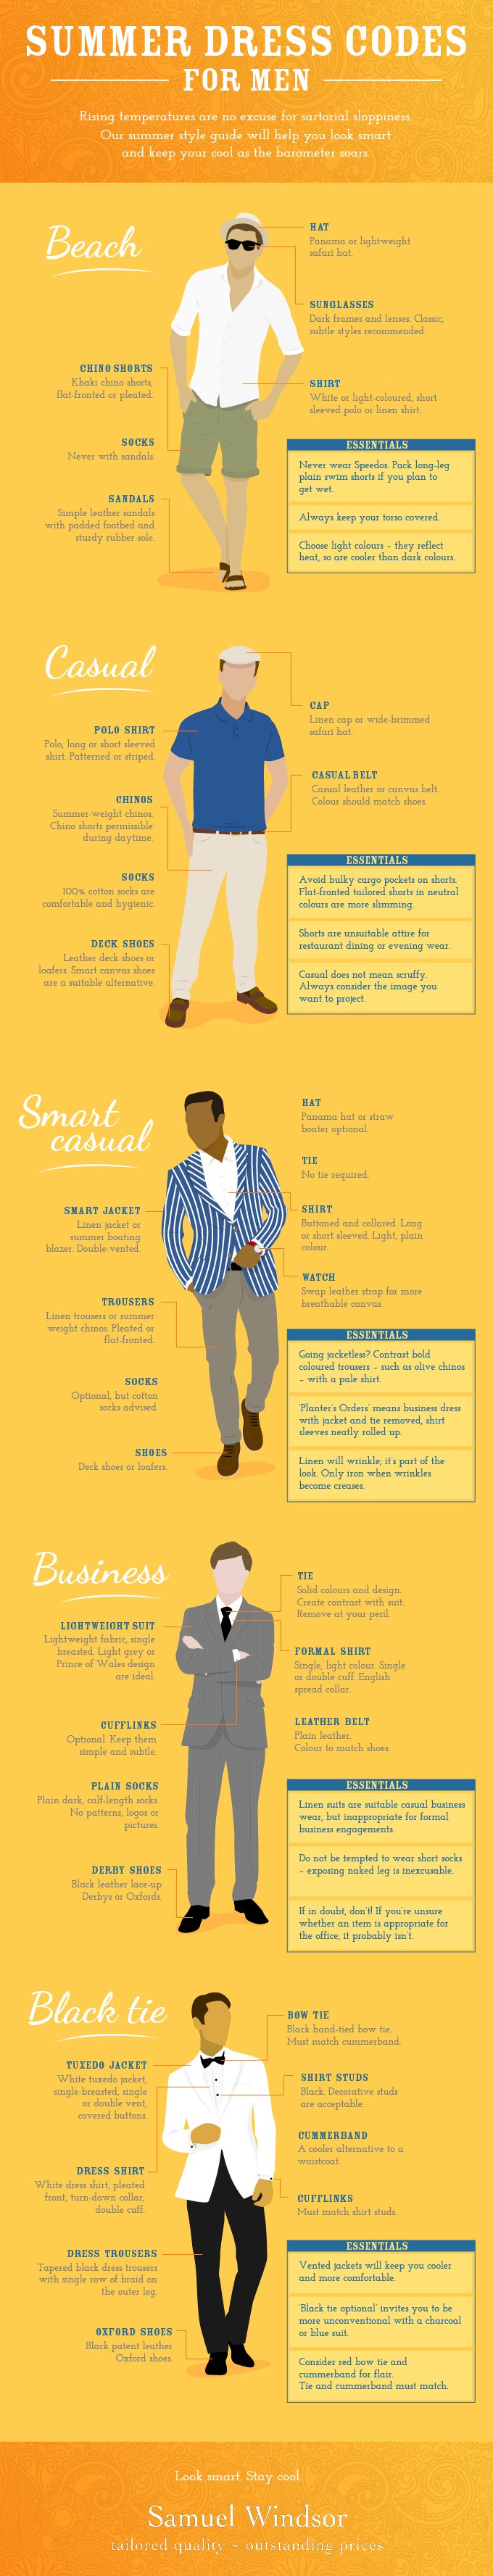 Summer Dress Codes Decoded in an #Infographic